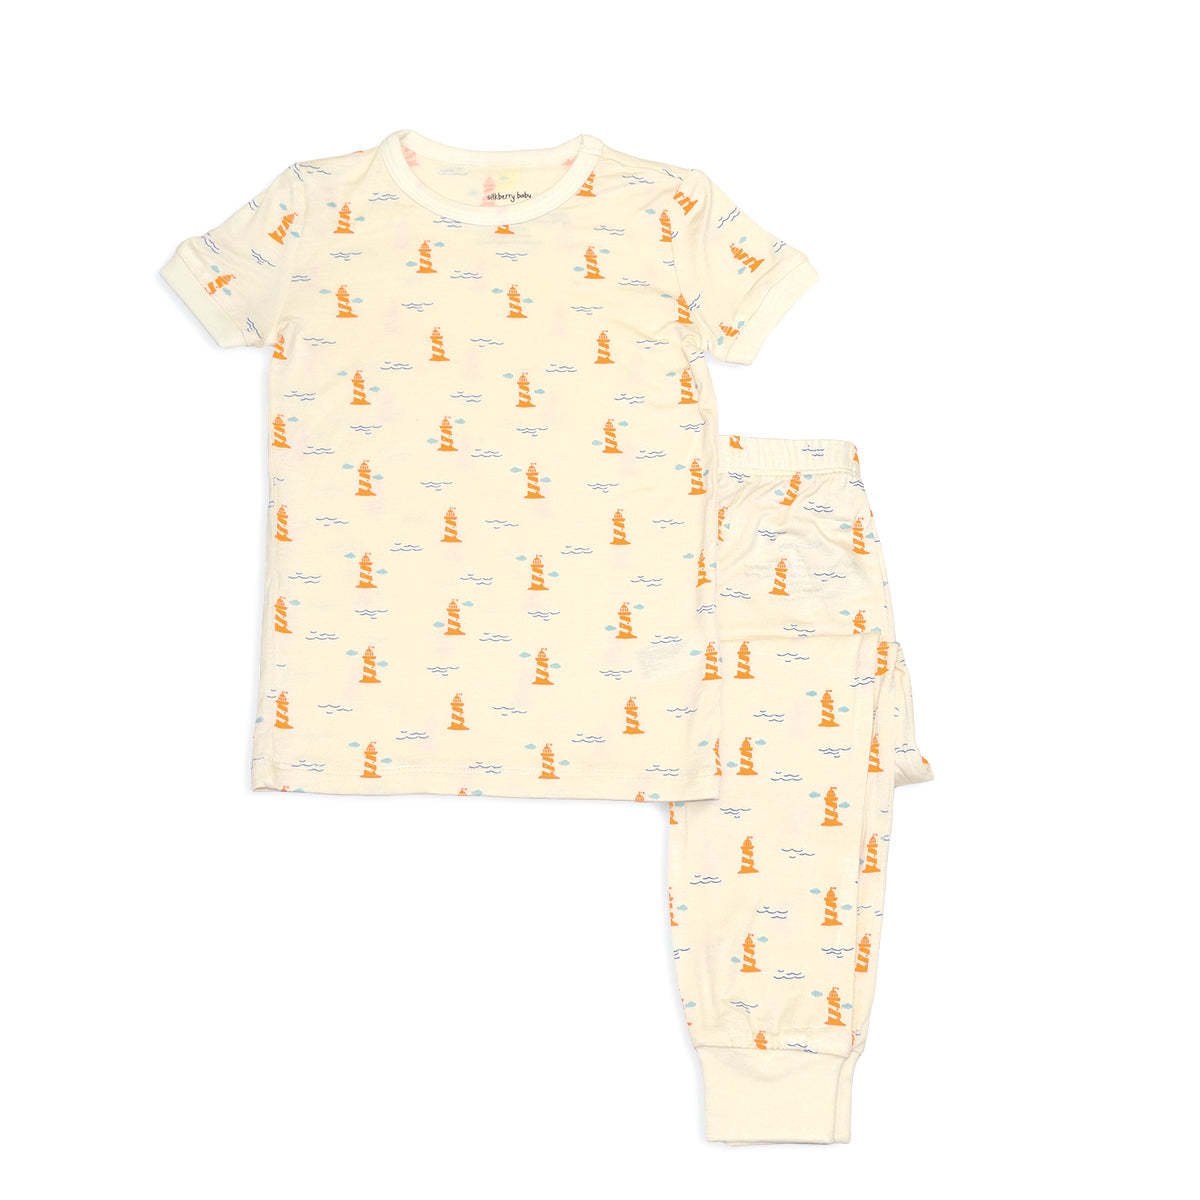 Bamboo Short Sleeve Pajama Set (Lighthouse Print)